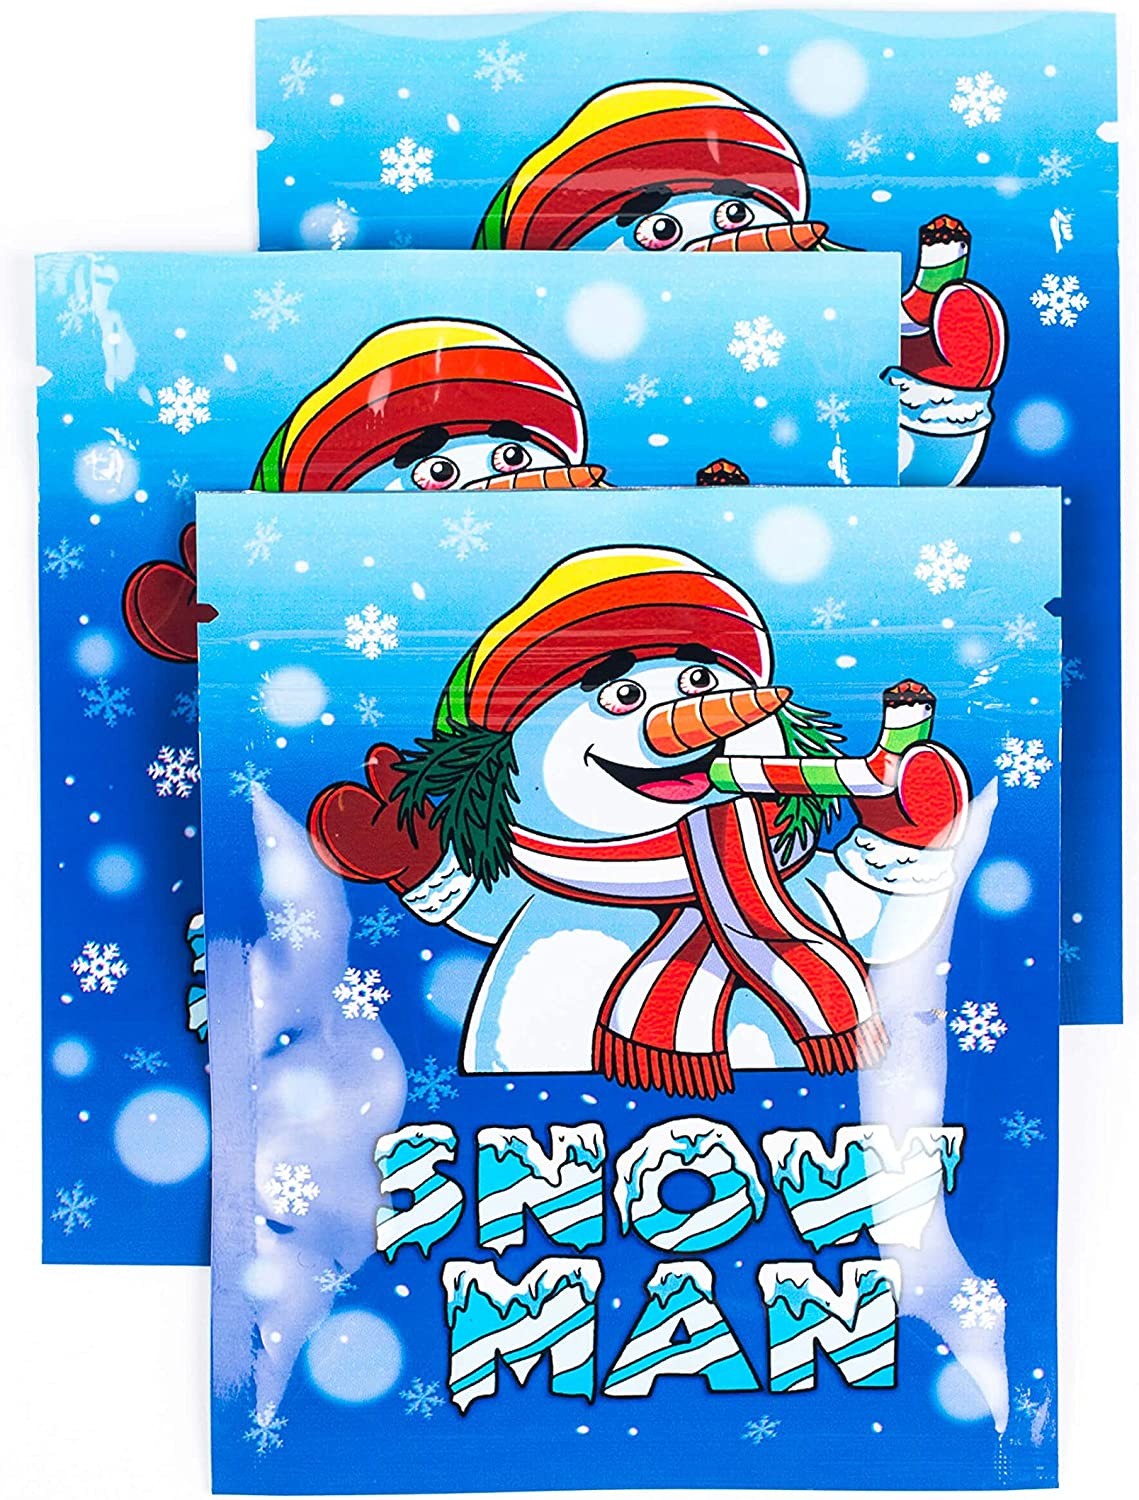 200 PACK | BEST Designs | Smell Proof Mylar Bags 3.5g | Resealable Ziplock Food Safe Aluminum Foil Plastic Baggies ([200 Pack] - 3.5 x 4 in, Snow Man)